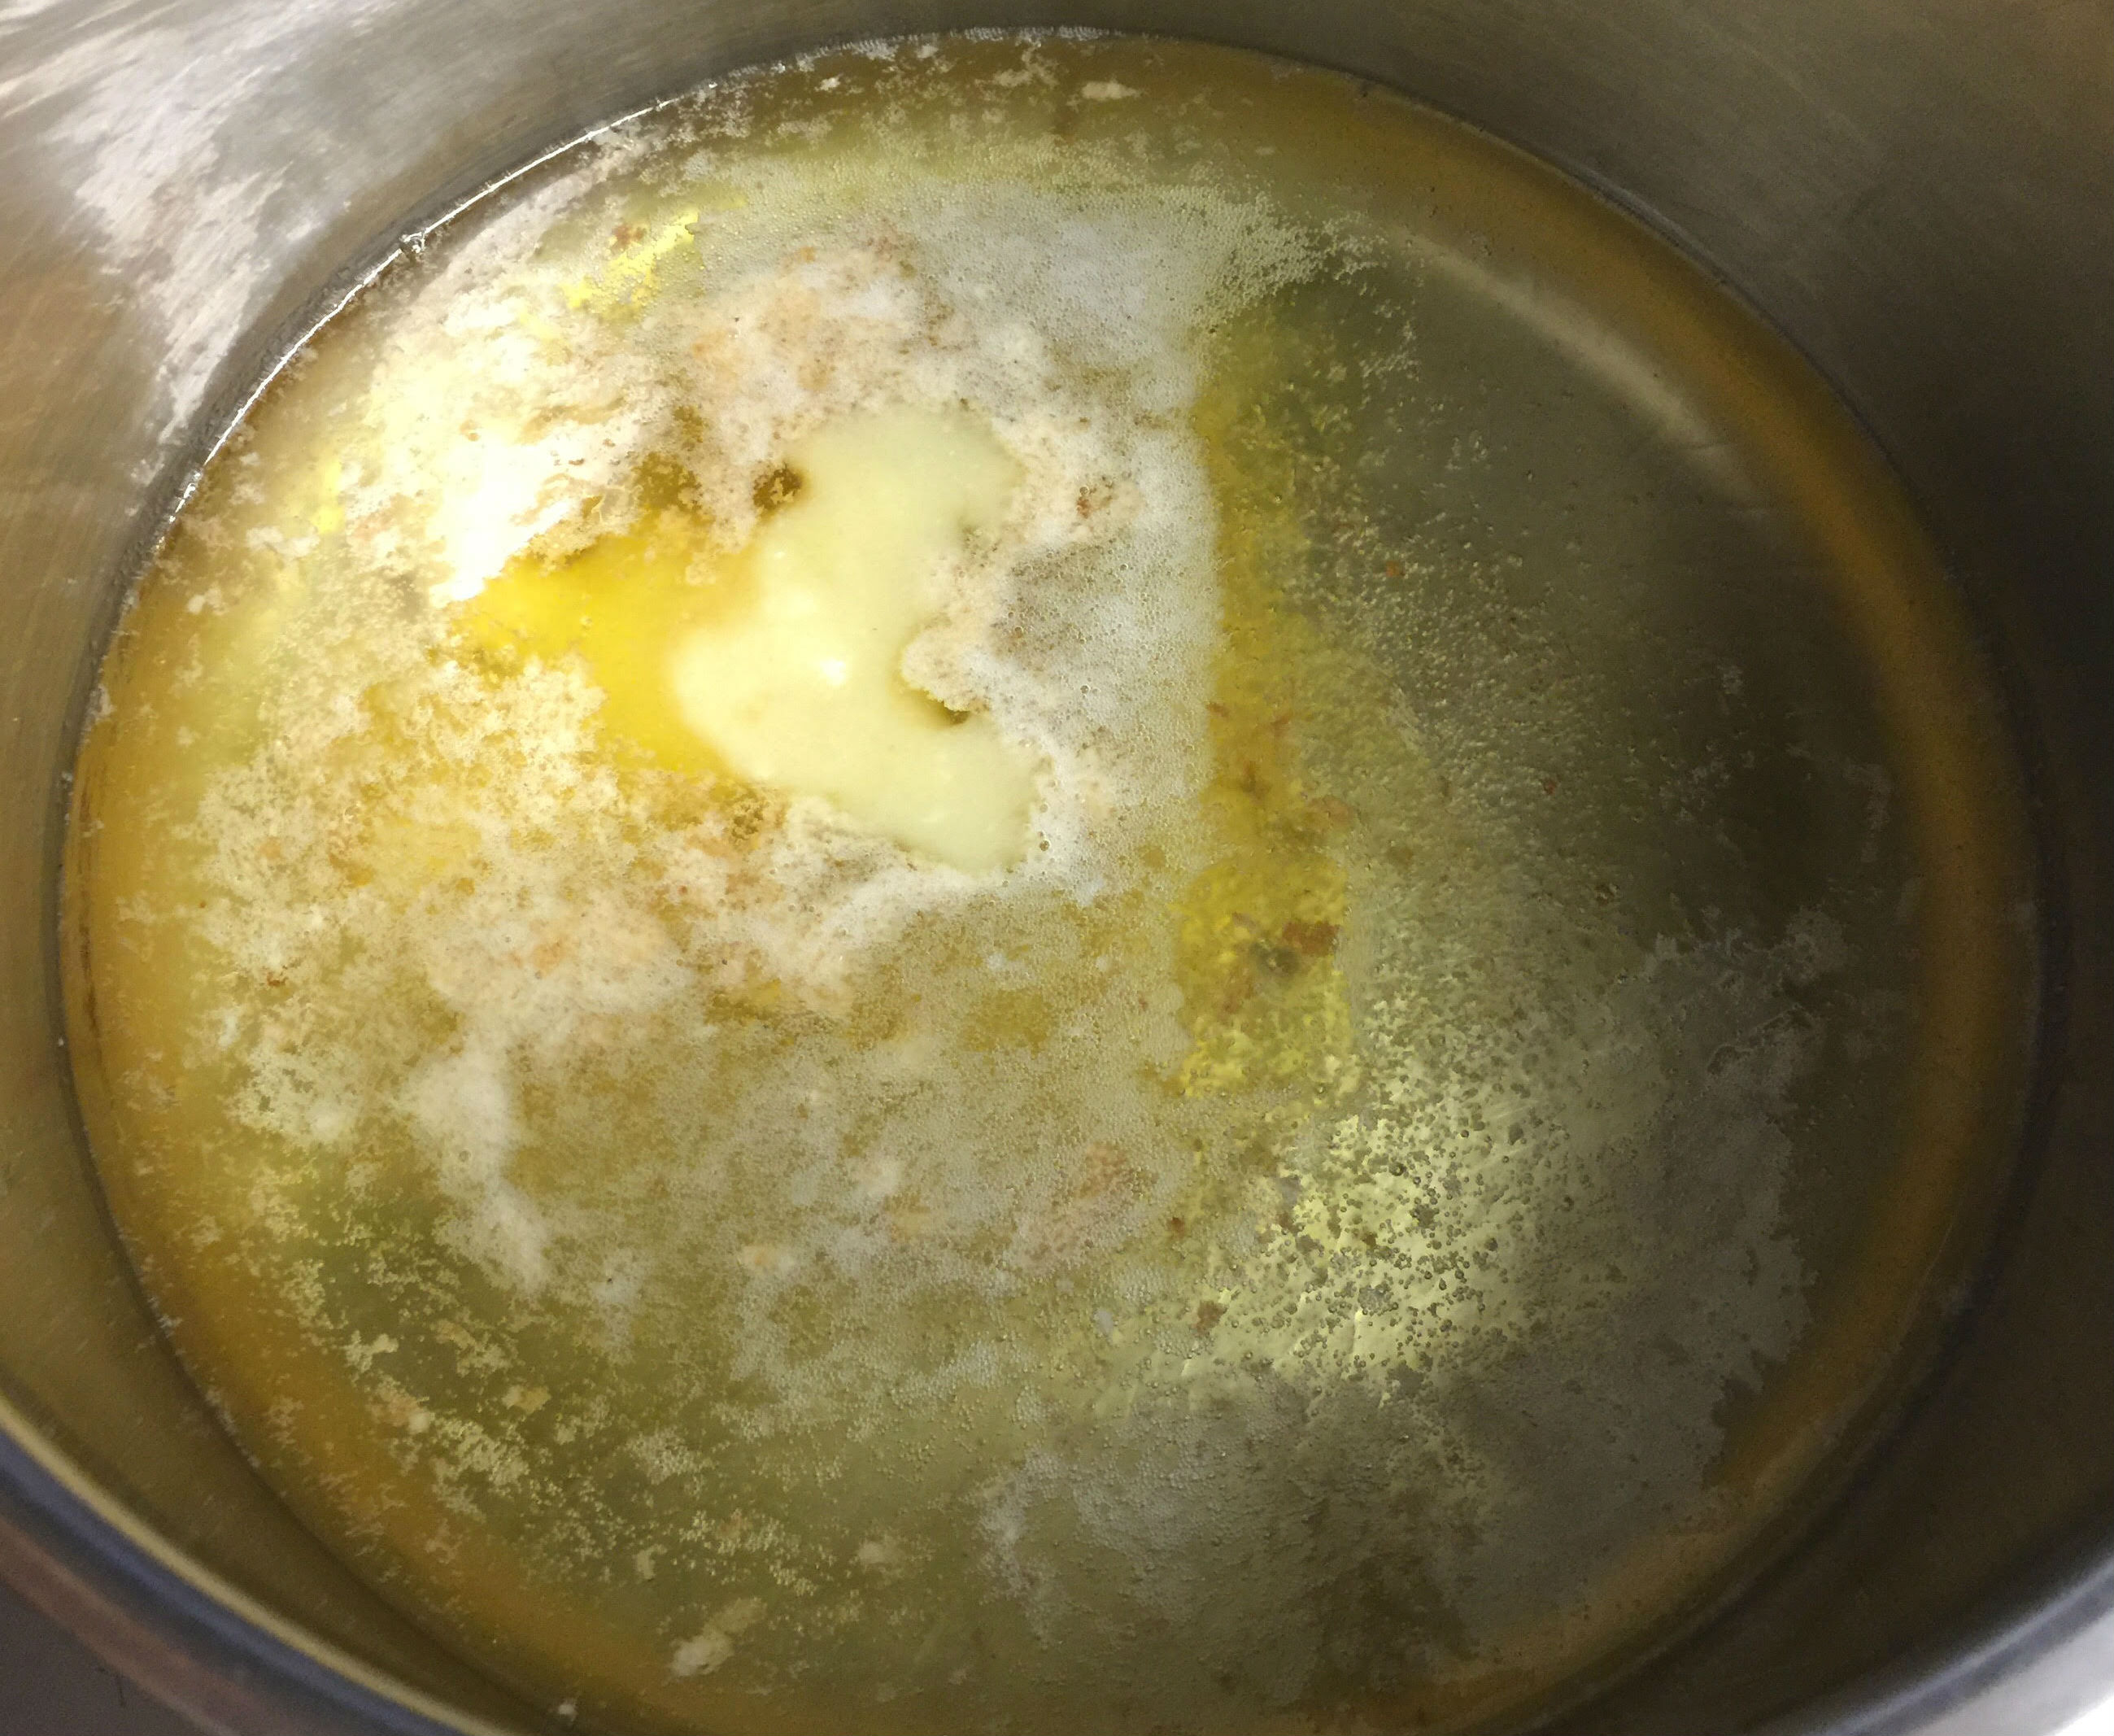 Melting ghee with oil